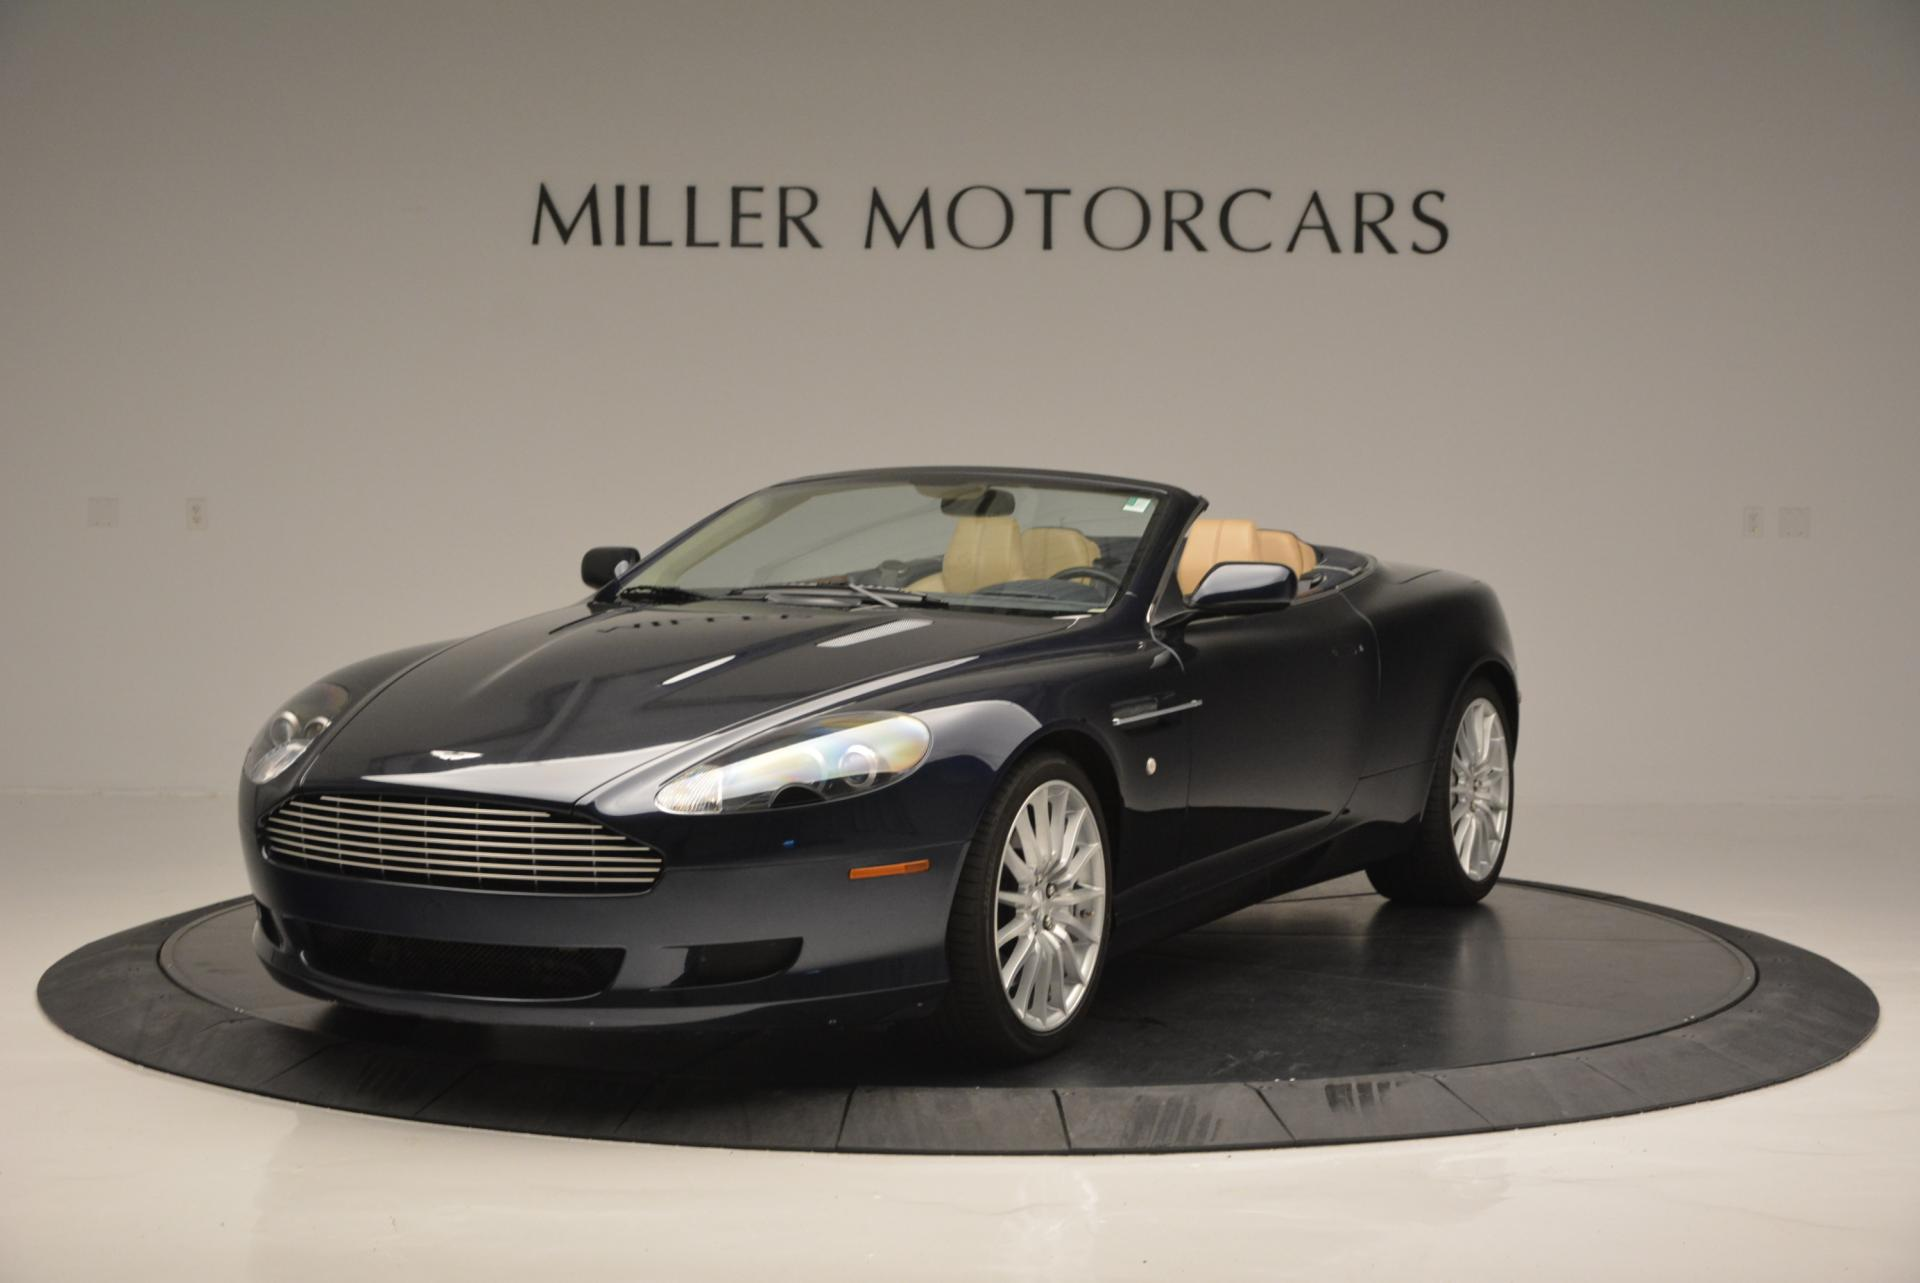 Used 2007 Aston Martin DB9 Volante for sale Sold at Bentley Greenwich in Greenwich CT 06830 1